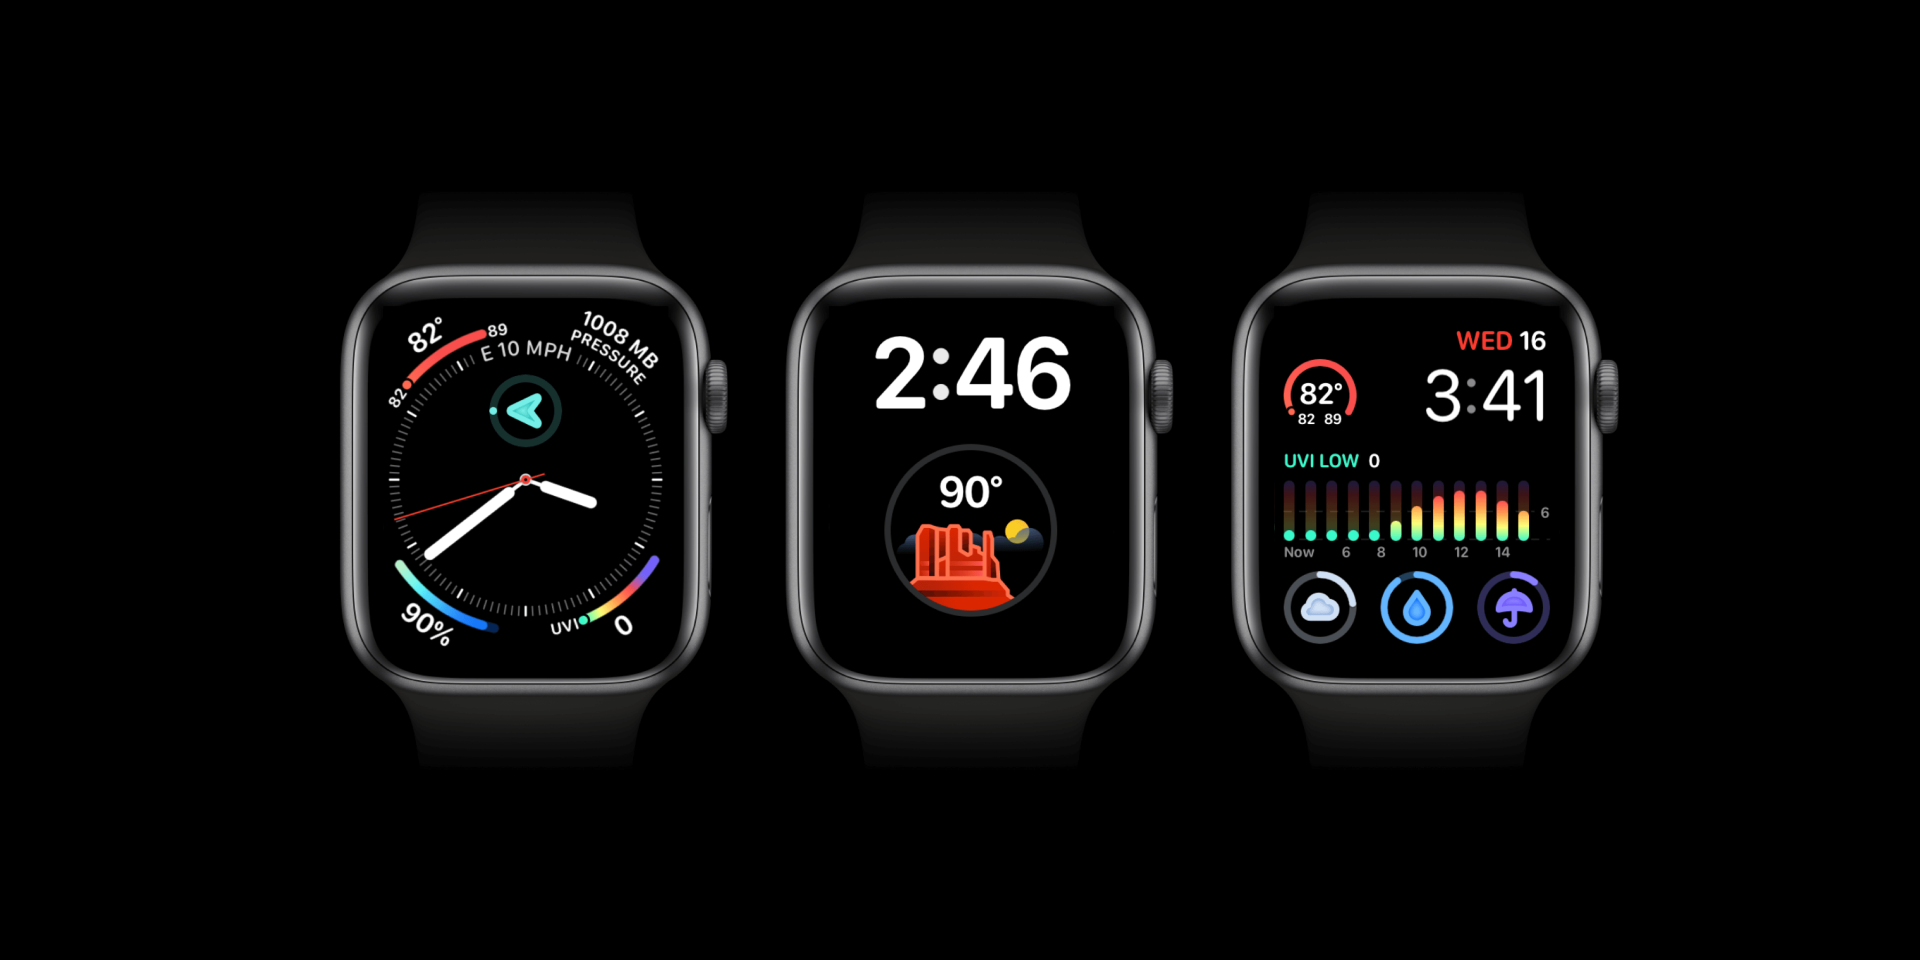 Multiple complications and watch faces